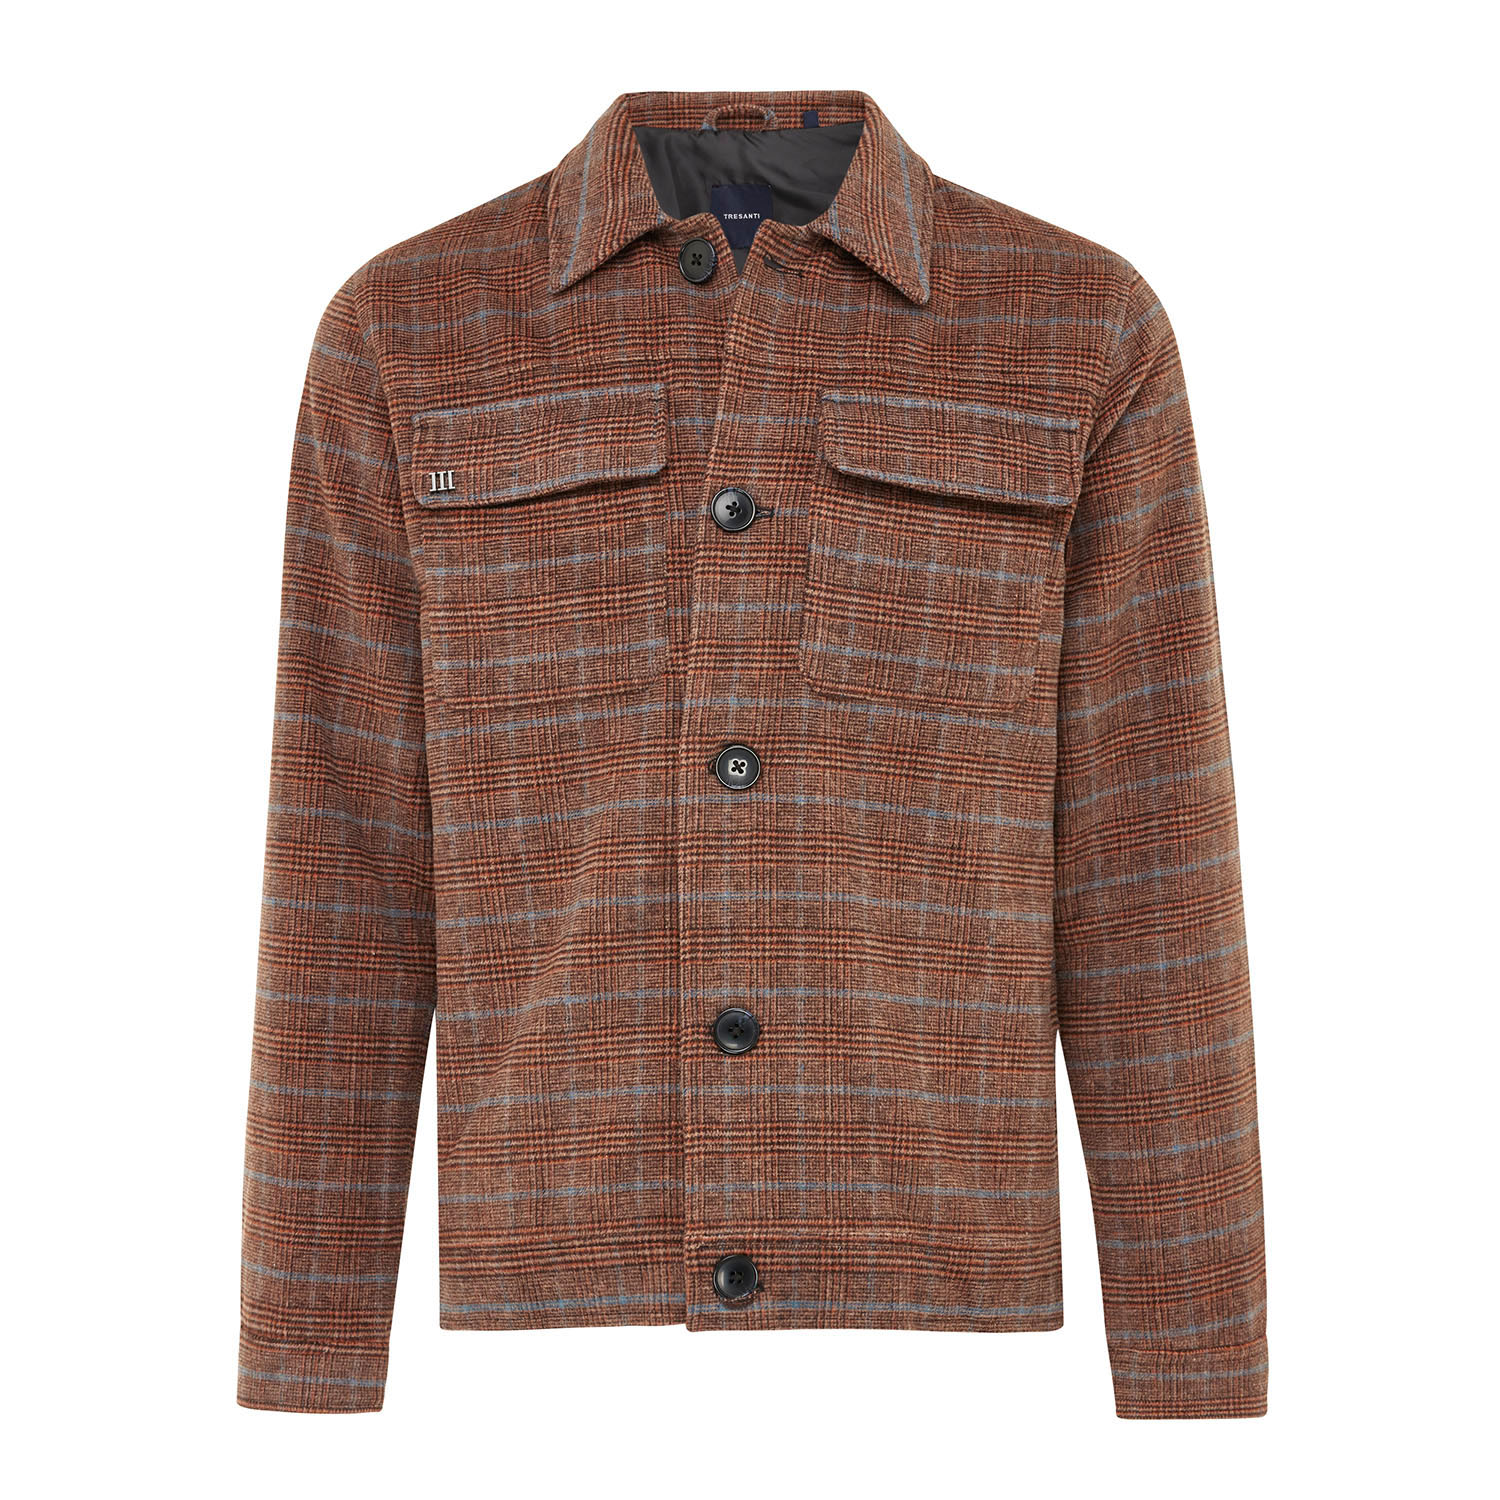 EDWIN | Lined jacket with check pattern in schades of brown and blue